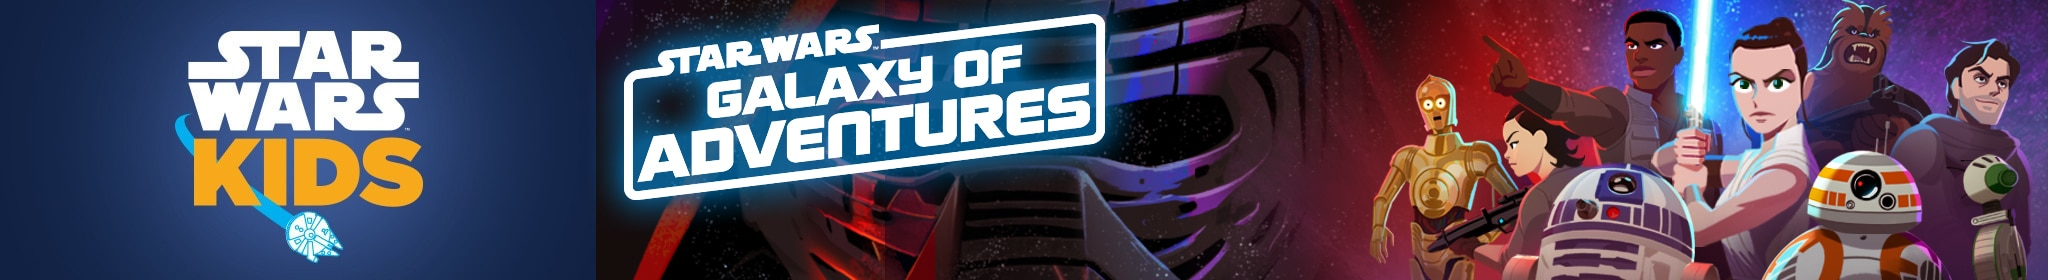 Star Wars Kids Galaxy of Adventures